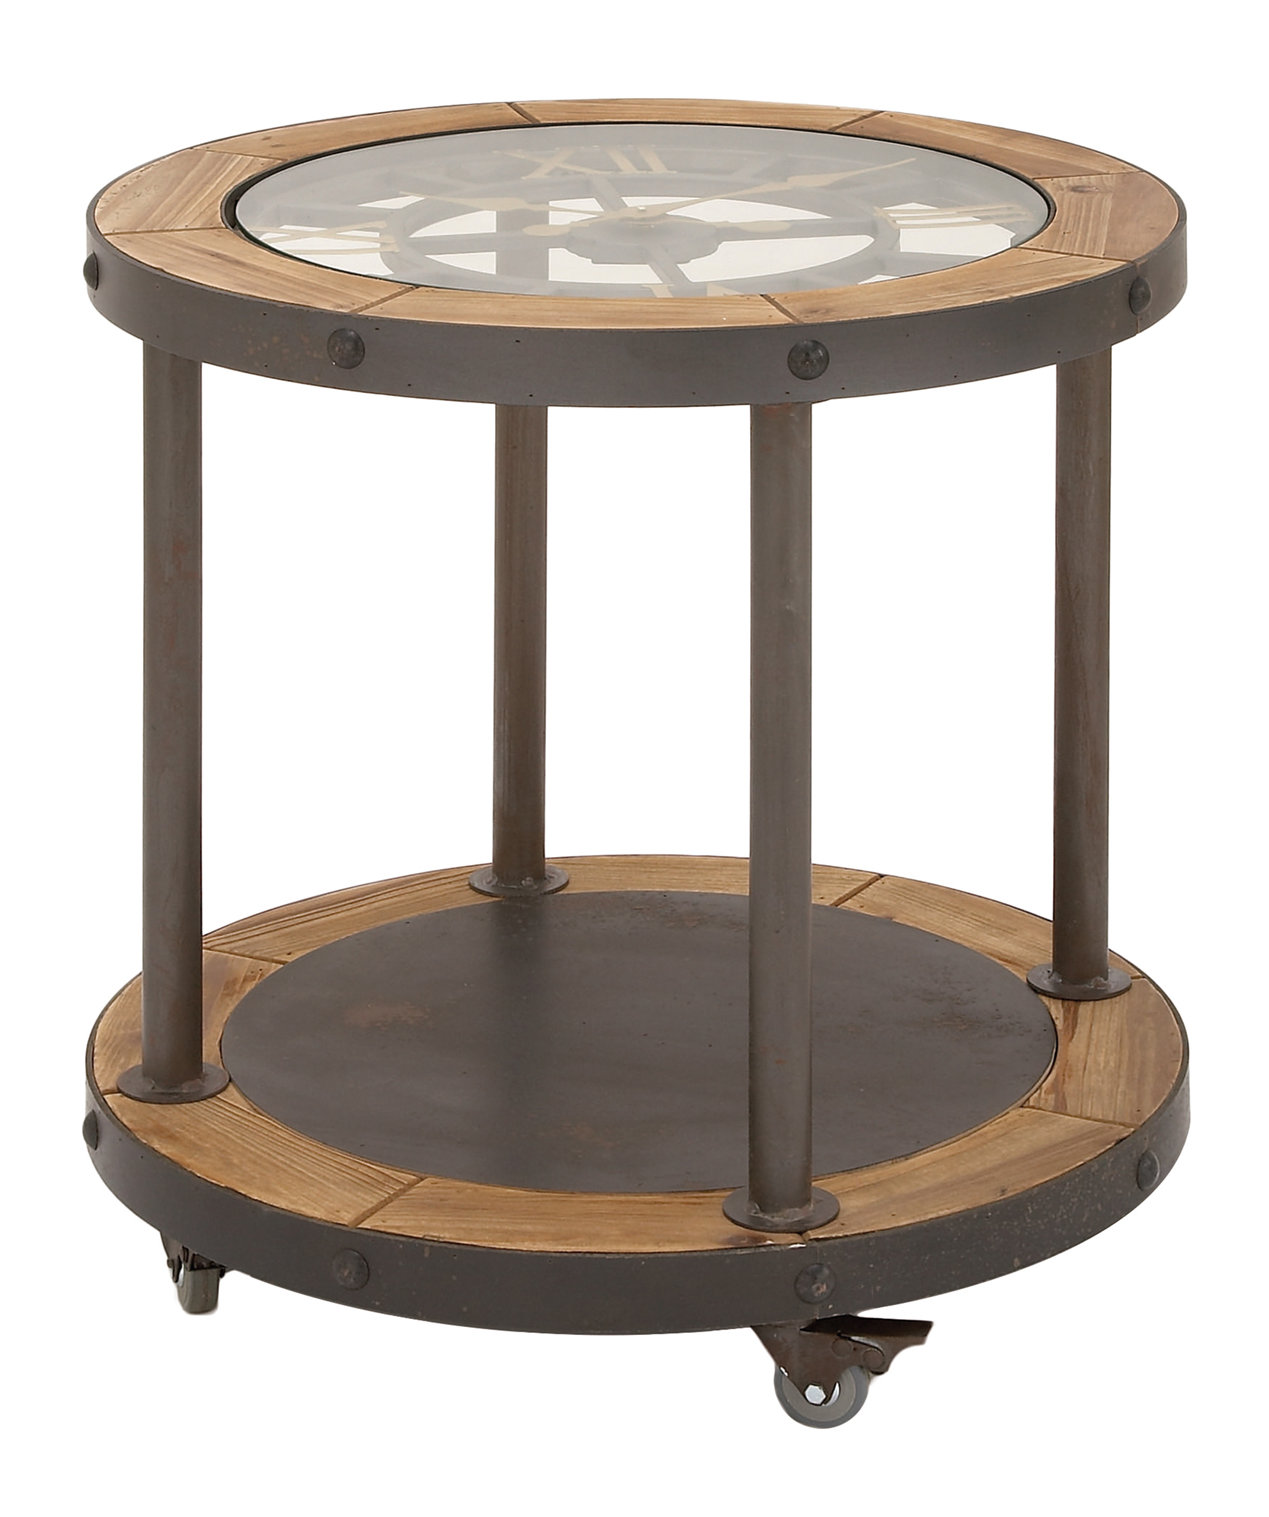 blue outdoor side table probably perfect best the rod iron urban designs clock top industrial end tables ashley furniture edmonton tall farm woodworking plans mid century couch